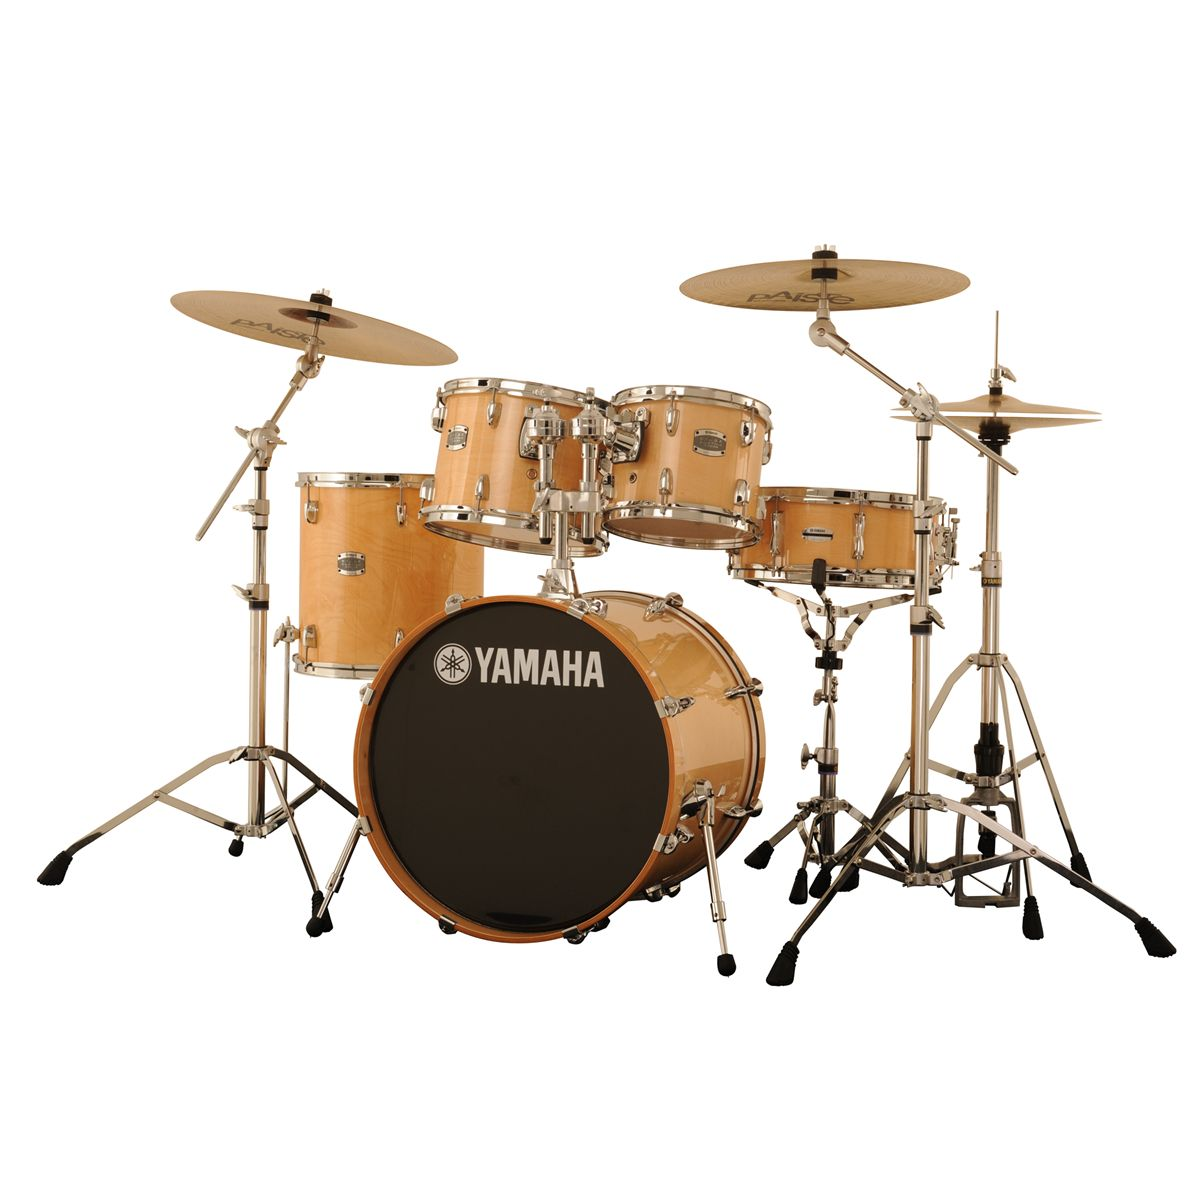 About Yamaha Drum Set Prices With Images Yamaha Drum Sets